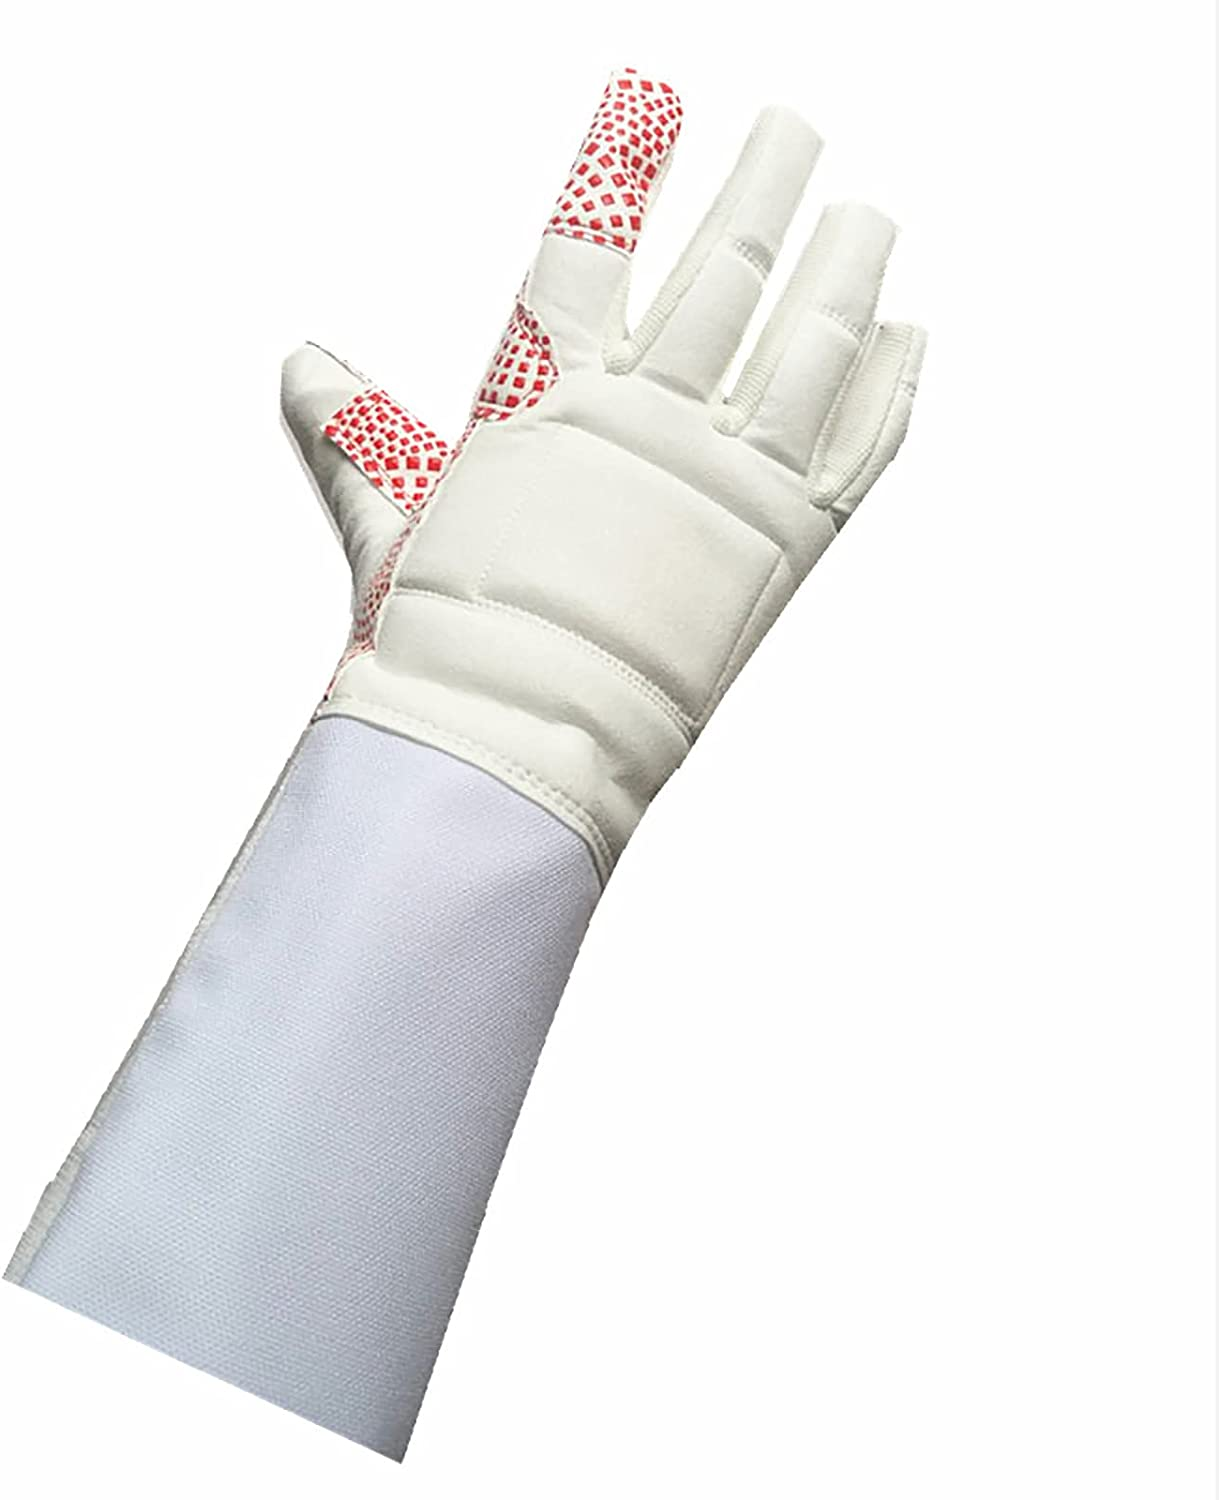 WDAA Fencing Tulsa Gorgeous Mall Glove Washable Anti-Skid Sabre for Gloves Practice